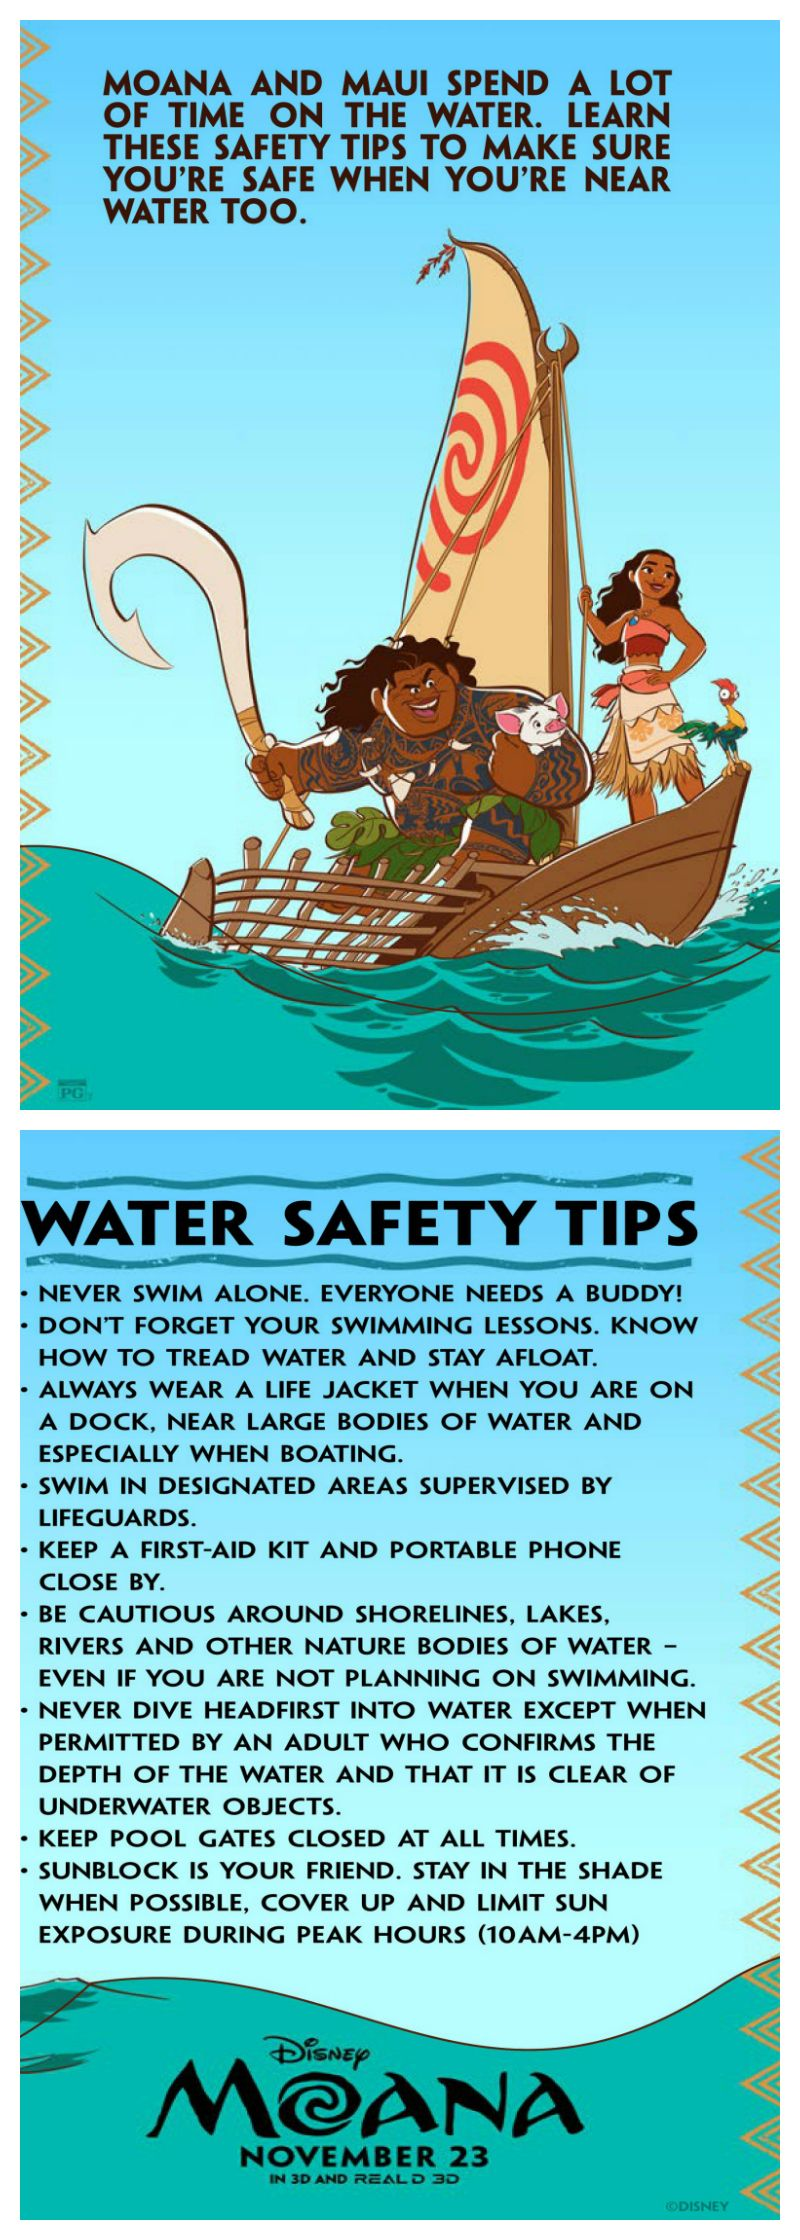 Disney Moana Water Safety Tips